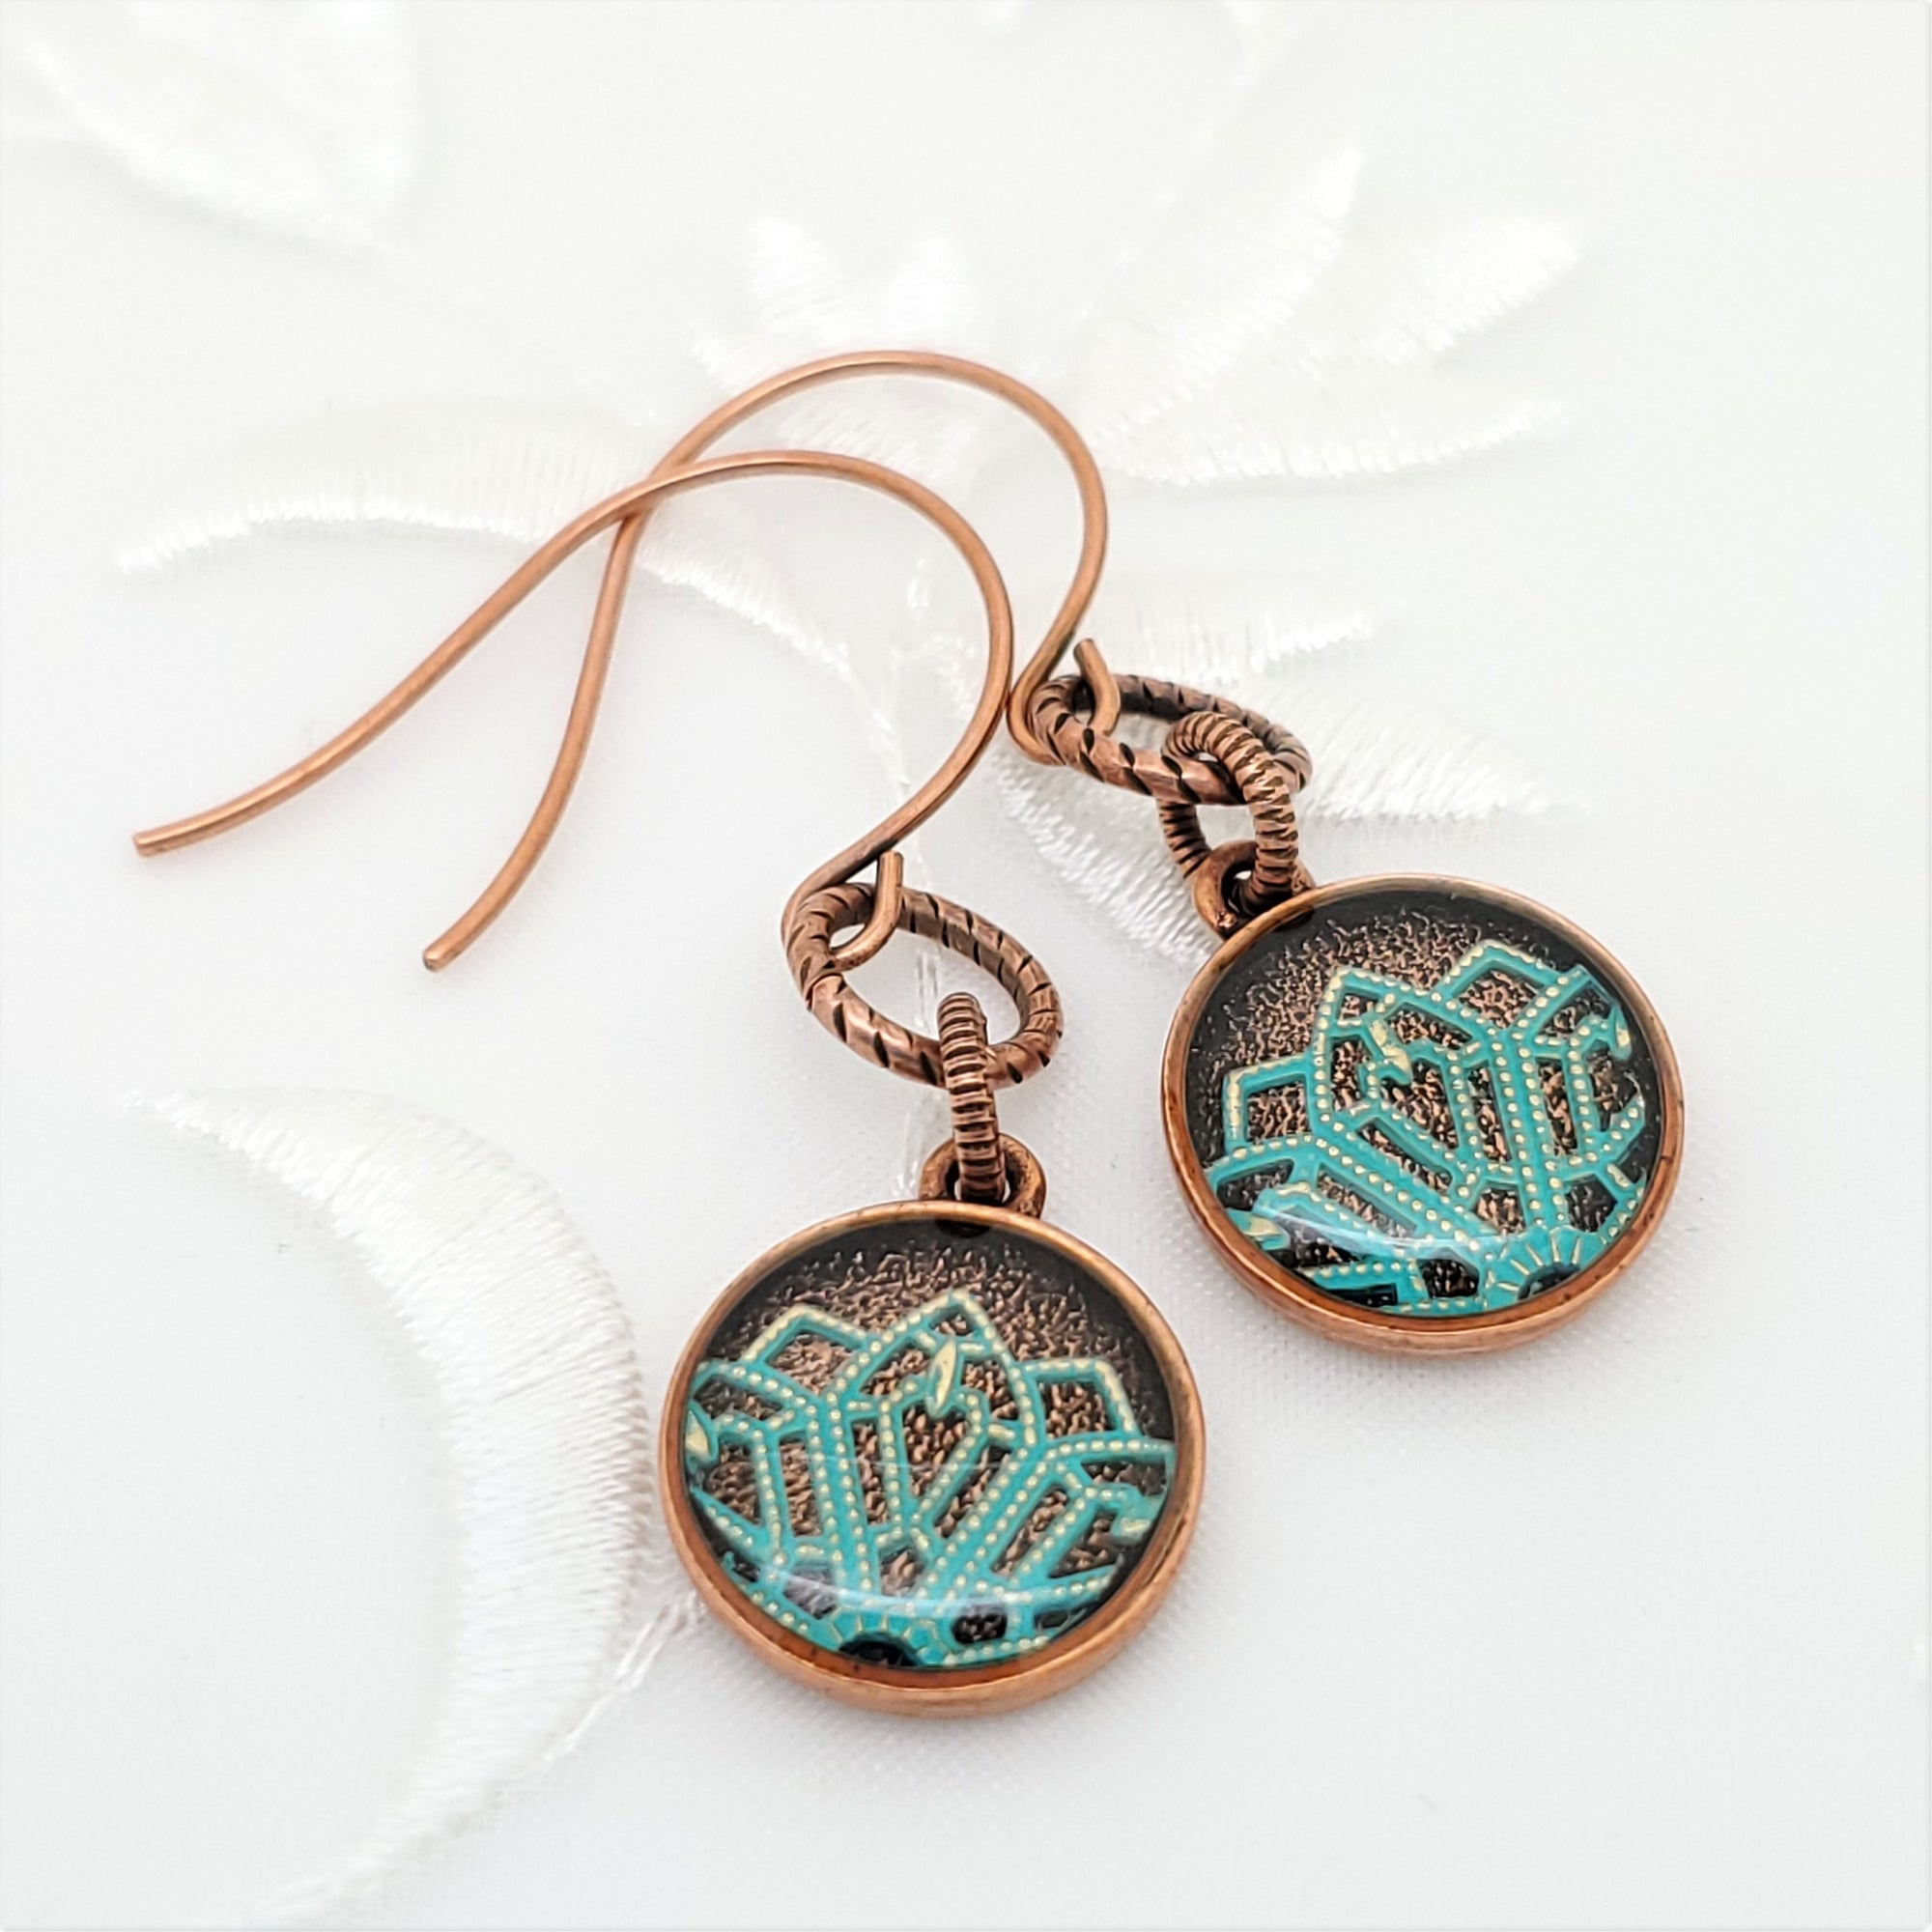 Antique Copper Round Earrings with Turquoise Filigree